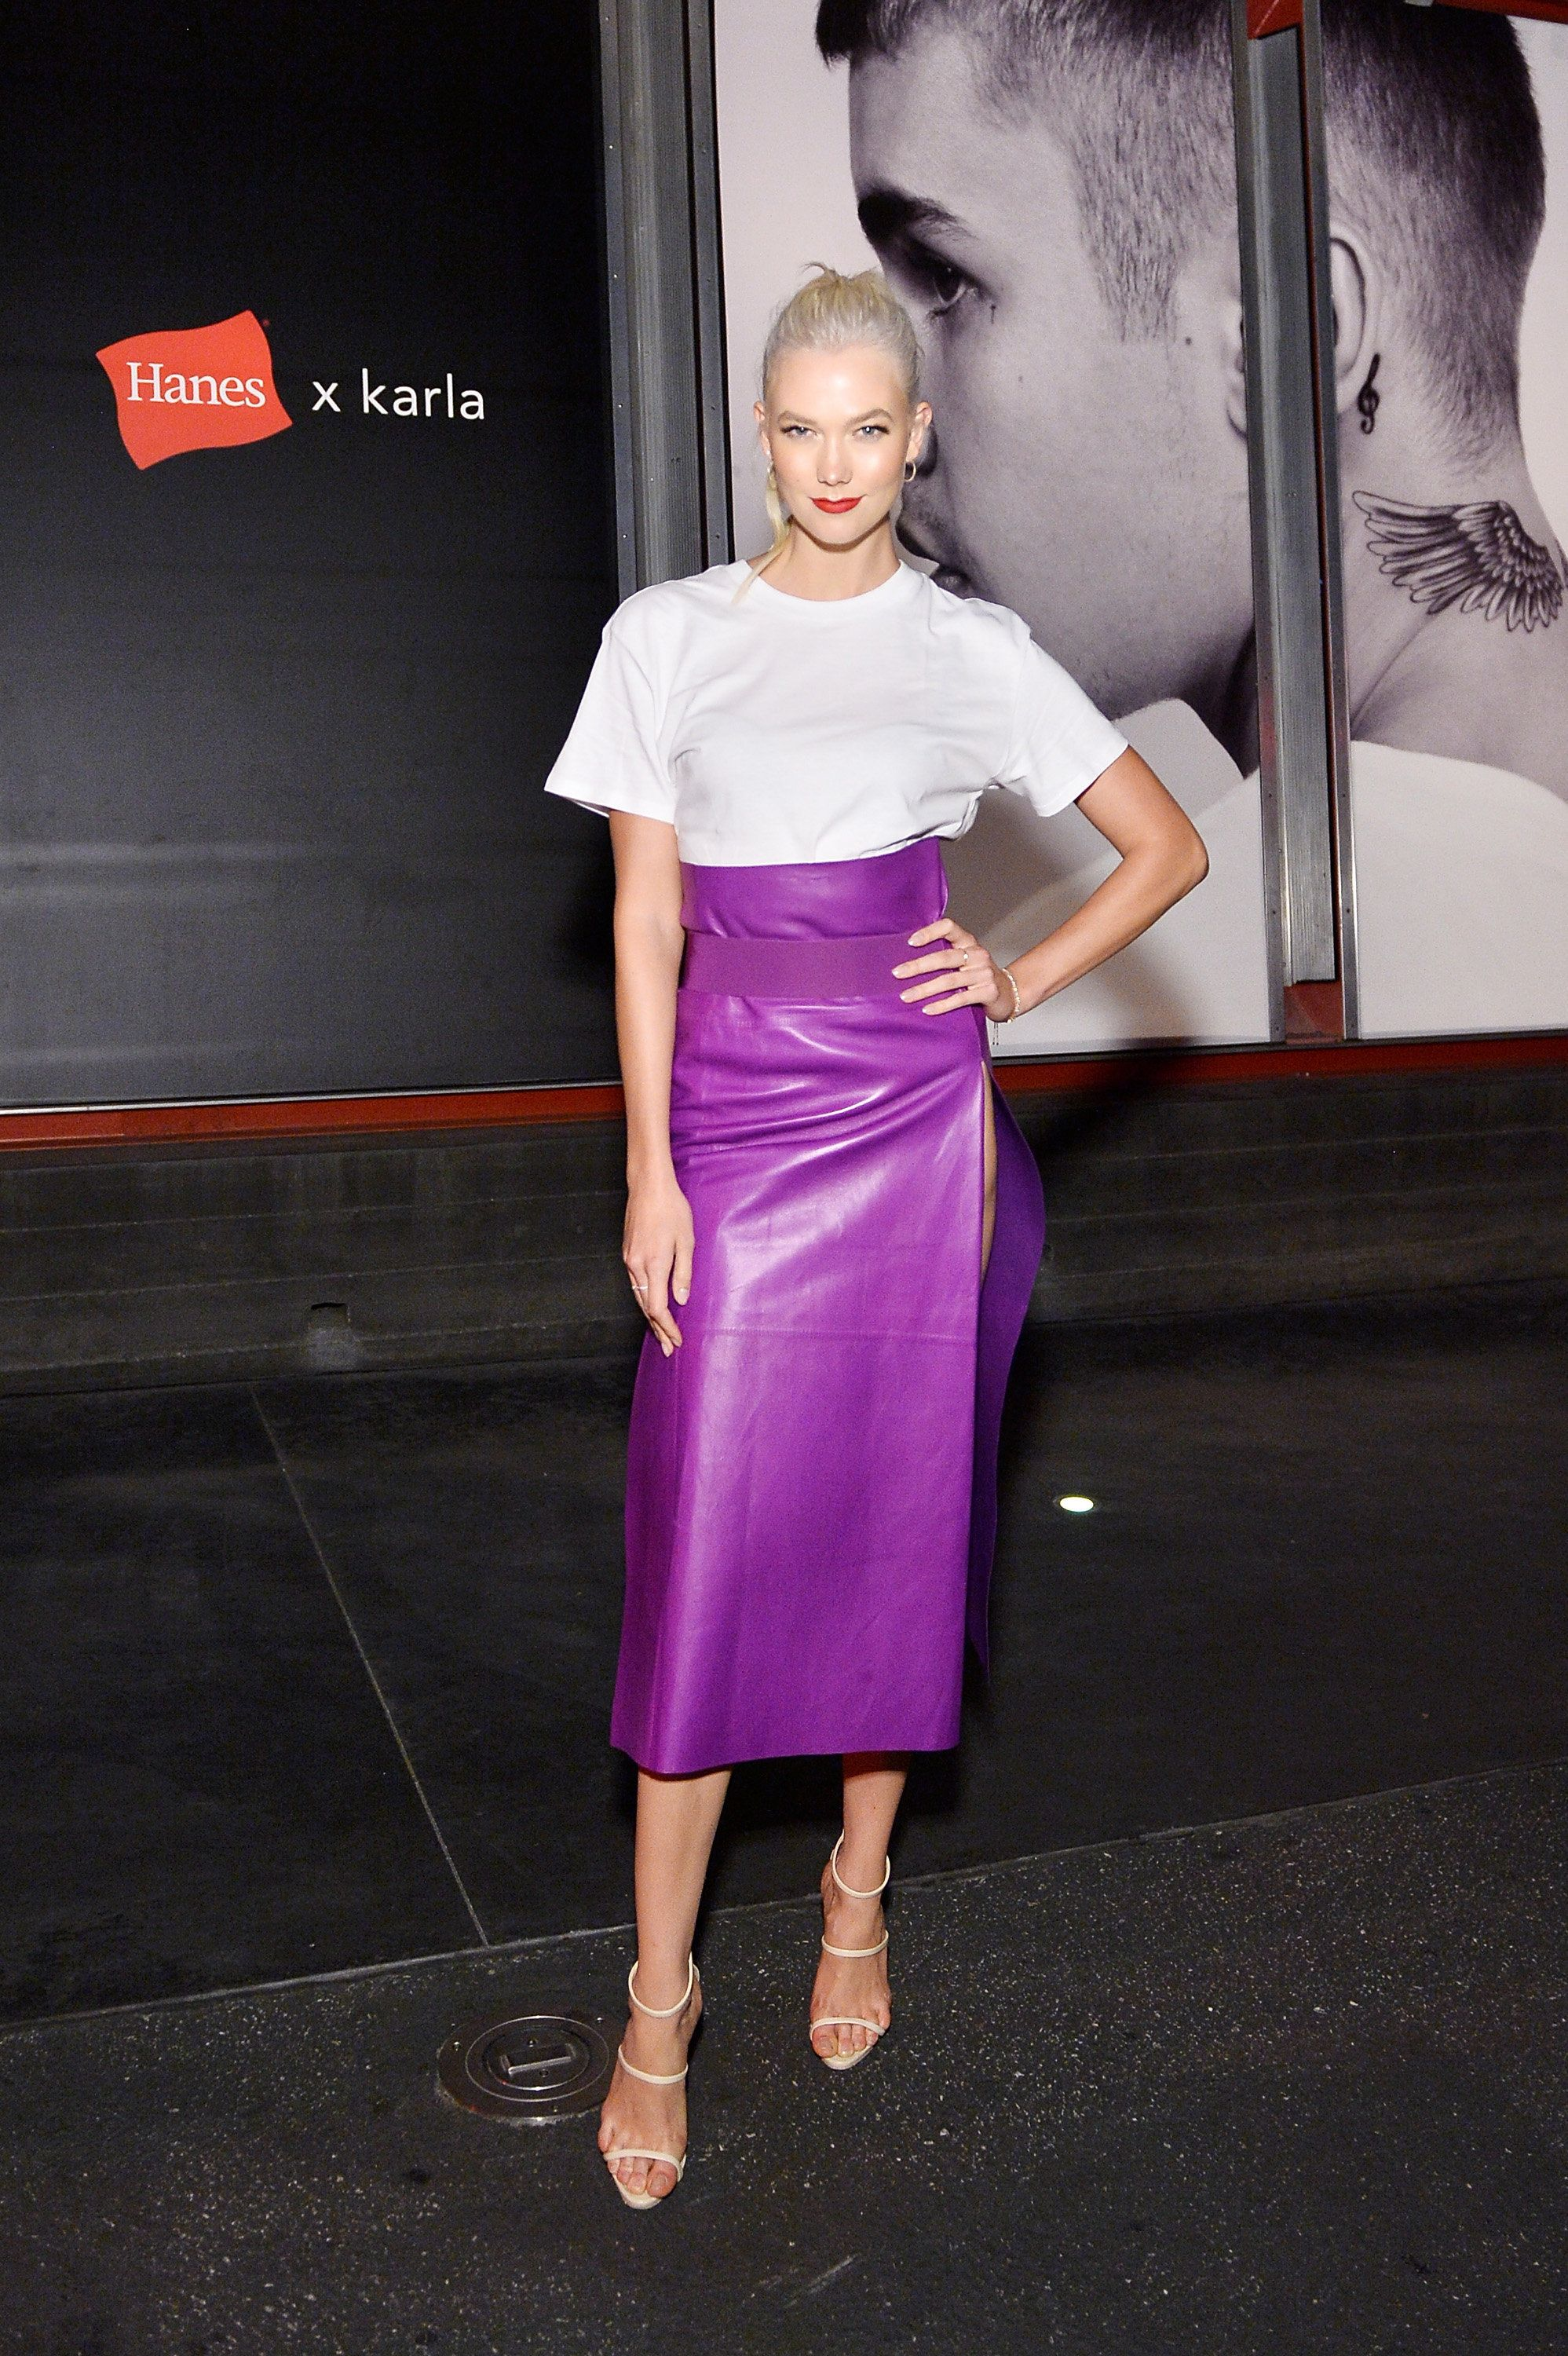 LOS ANGELES, CA - AUGUST 03:  Karlie Kloss at x karla Launch Party at Maxfield on August 3, 2017 in Los Angeles, California.  (Photo by Stefanie Keenan/Getty Images for x karla)